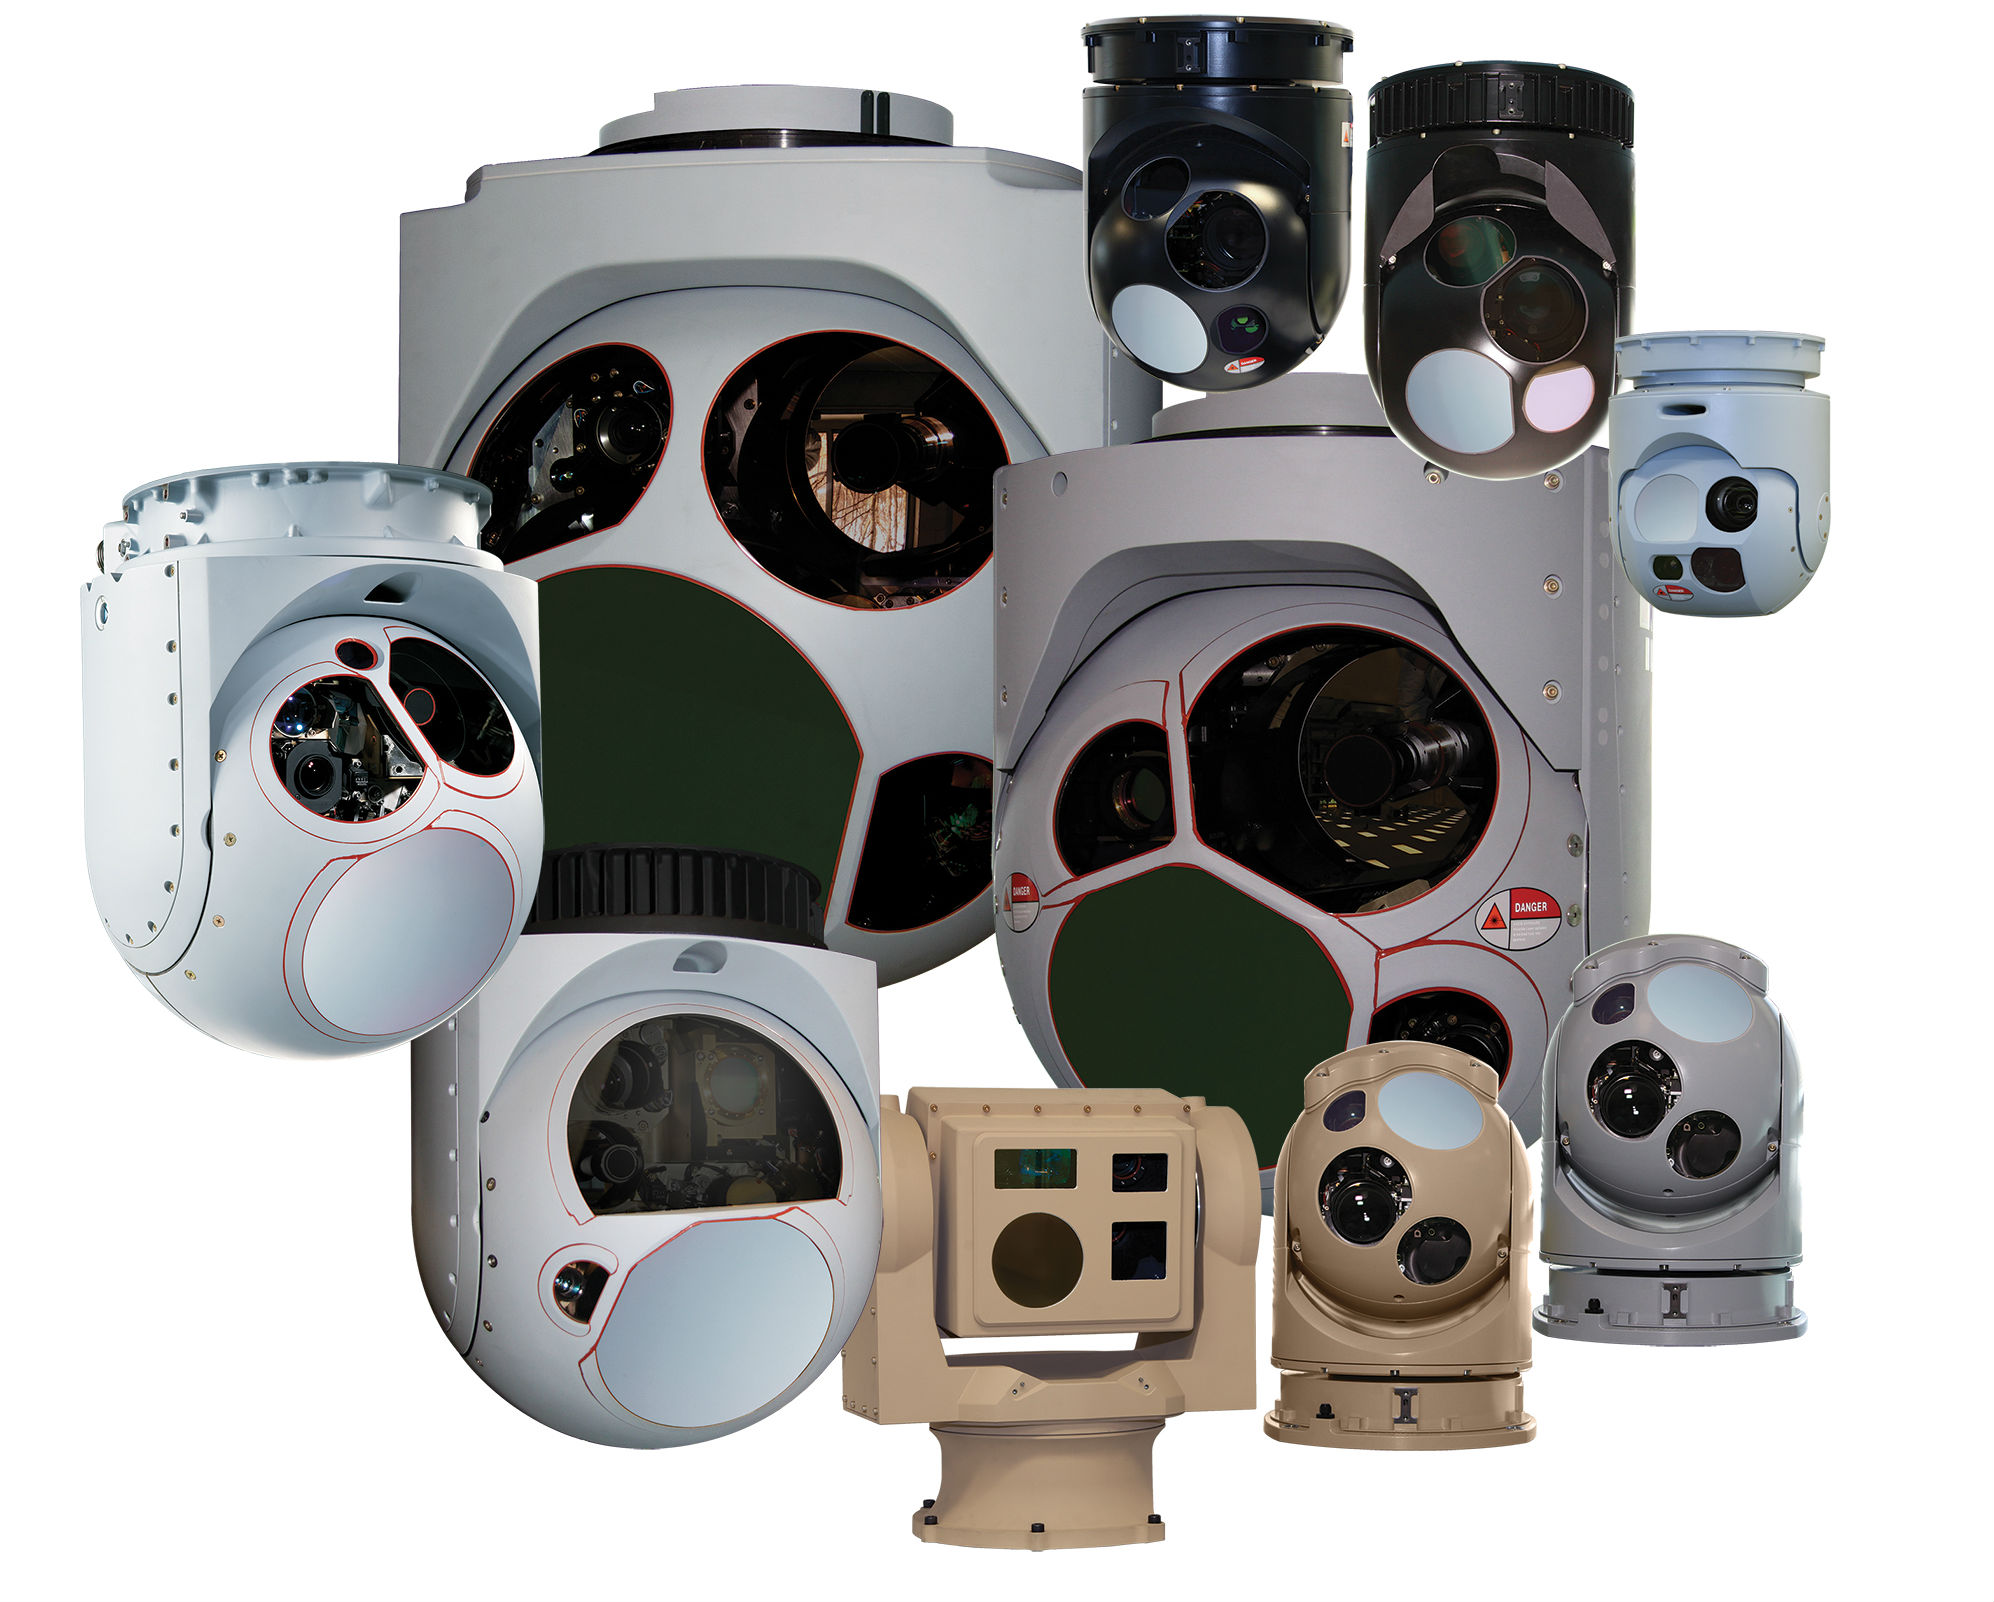 L3 WESCAM'S MX-Series of electro-optical/infrared systems.